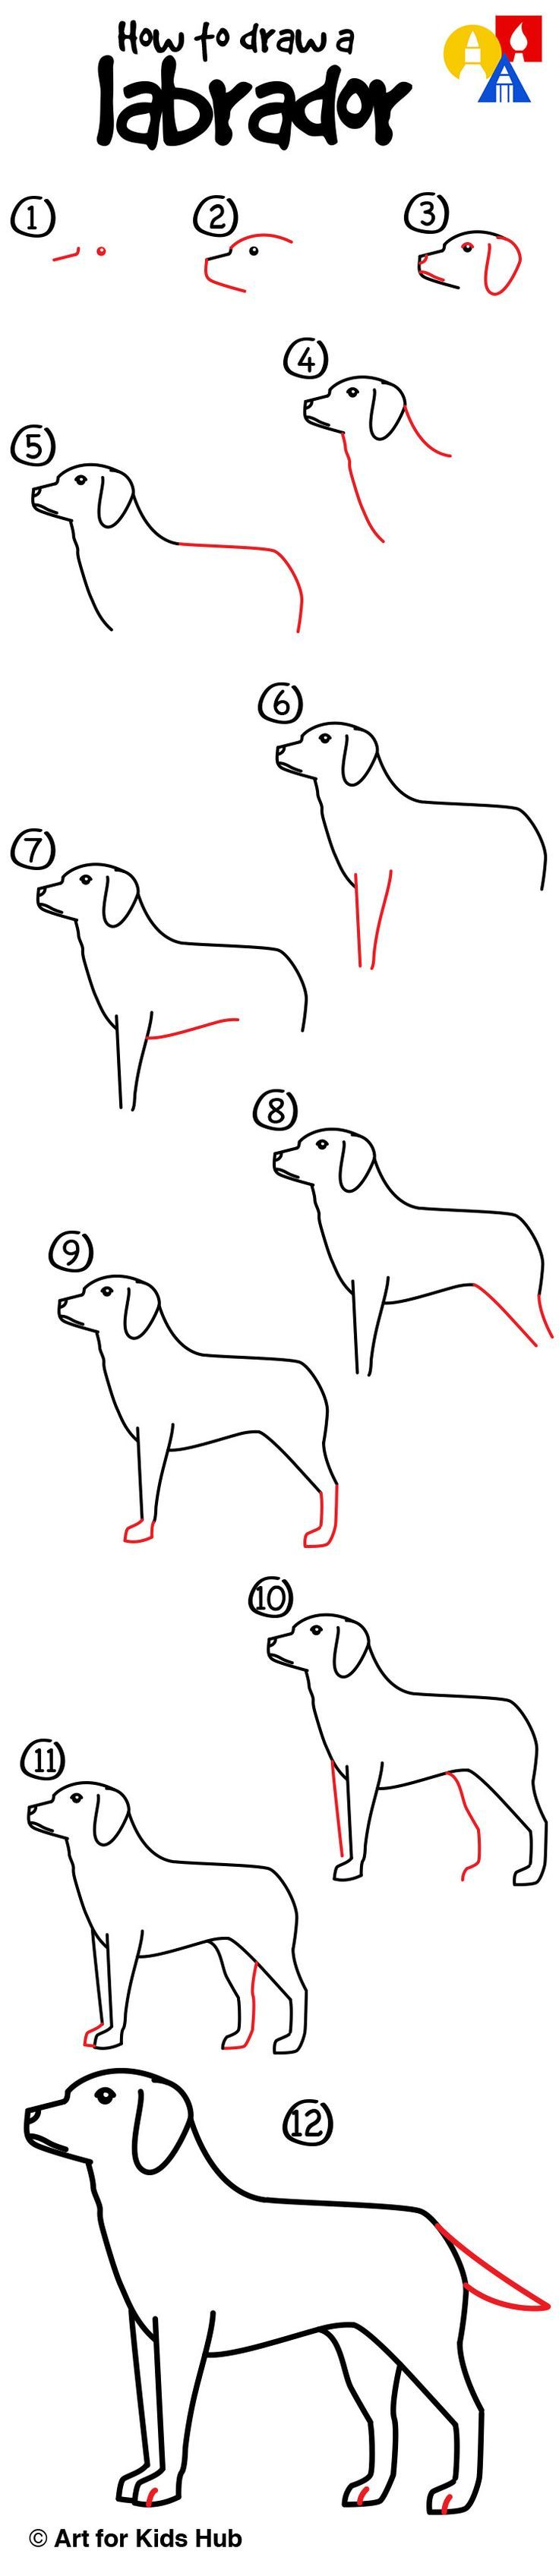 How to draw a yellow labrador!